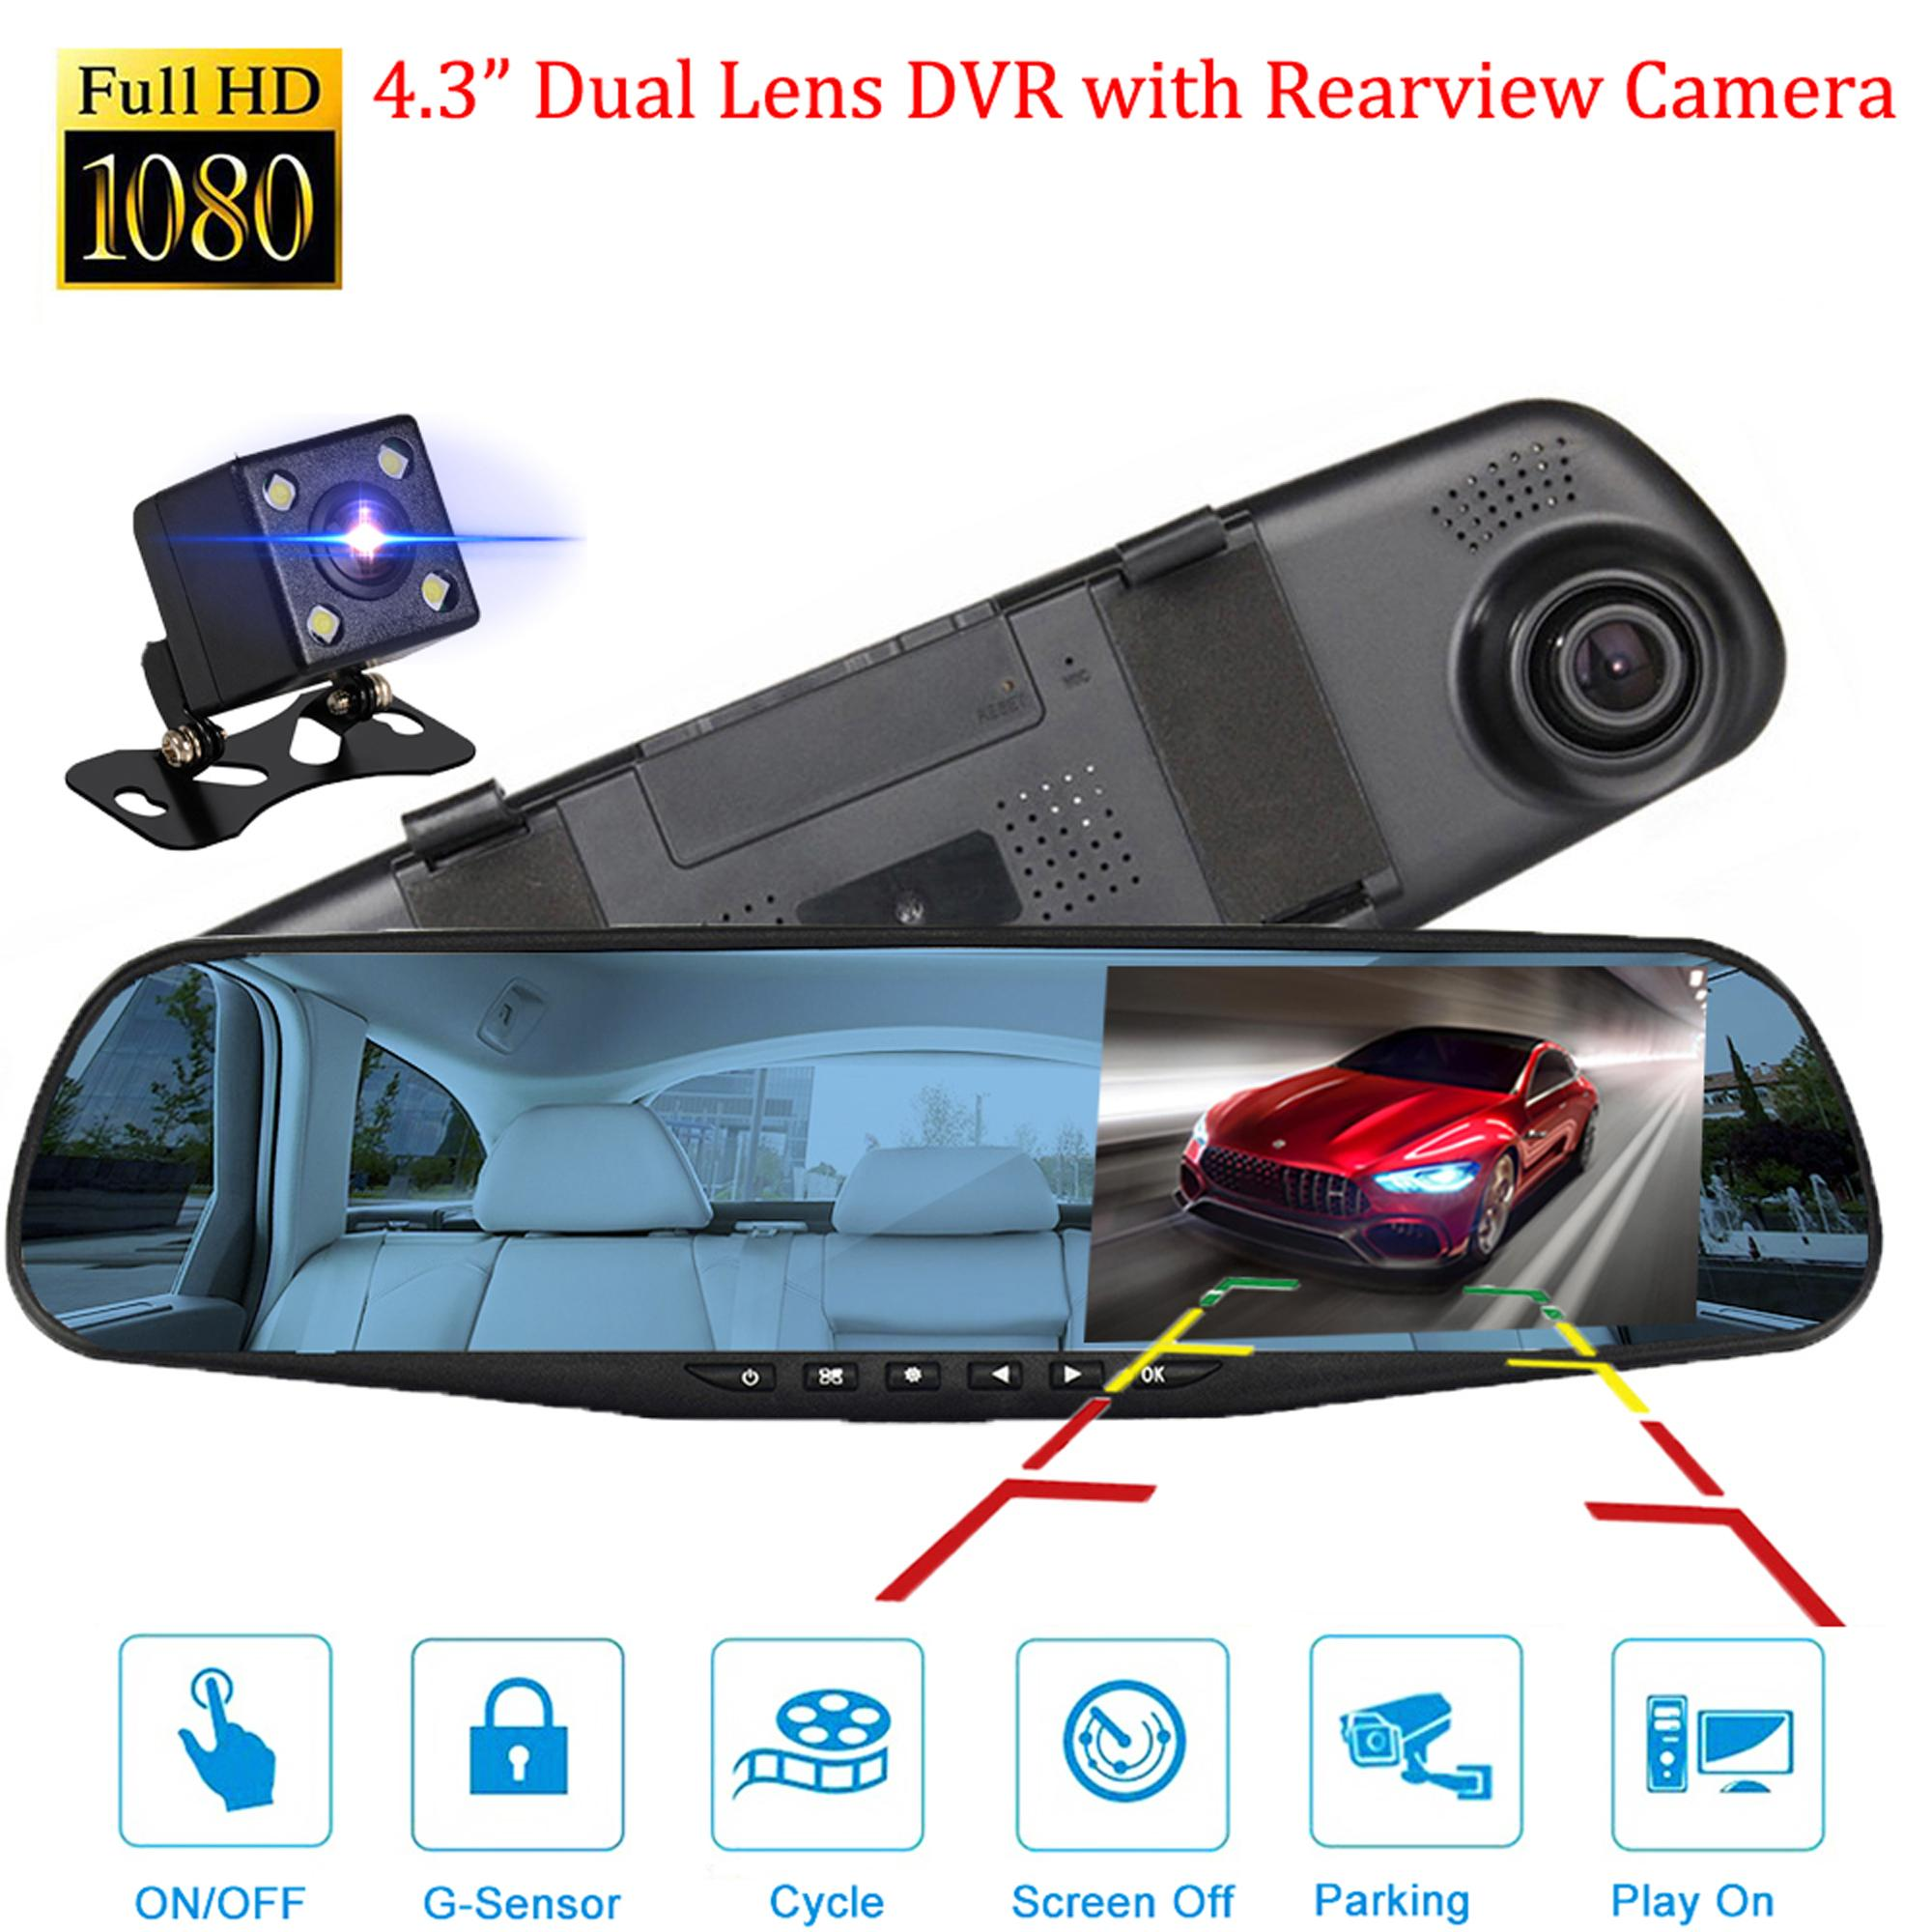 Car Camera For Sale Dashboard Camera Prices Brands Specs In